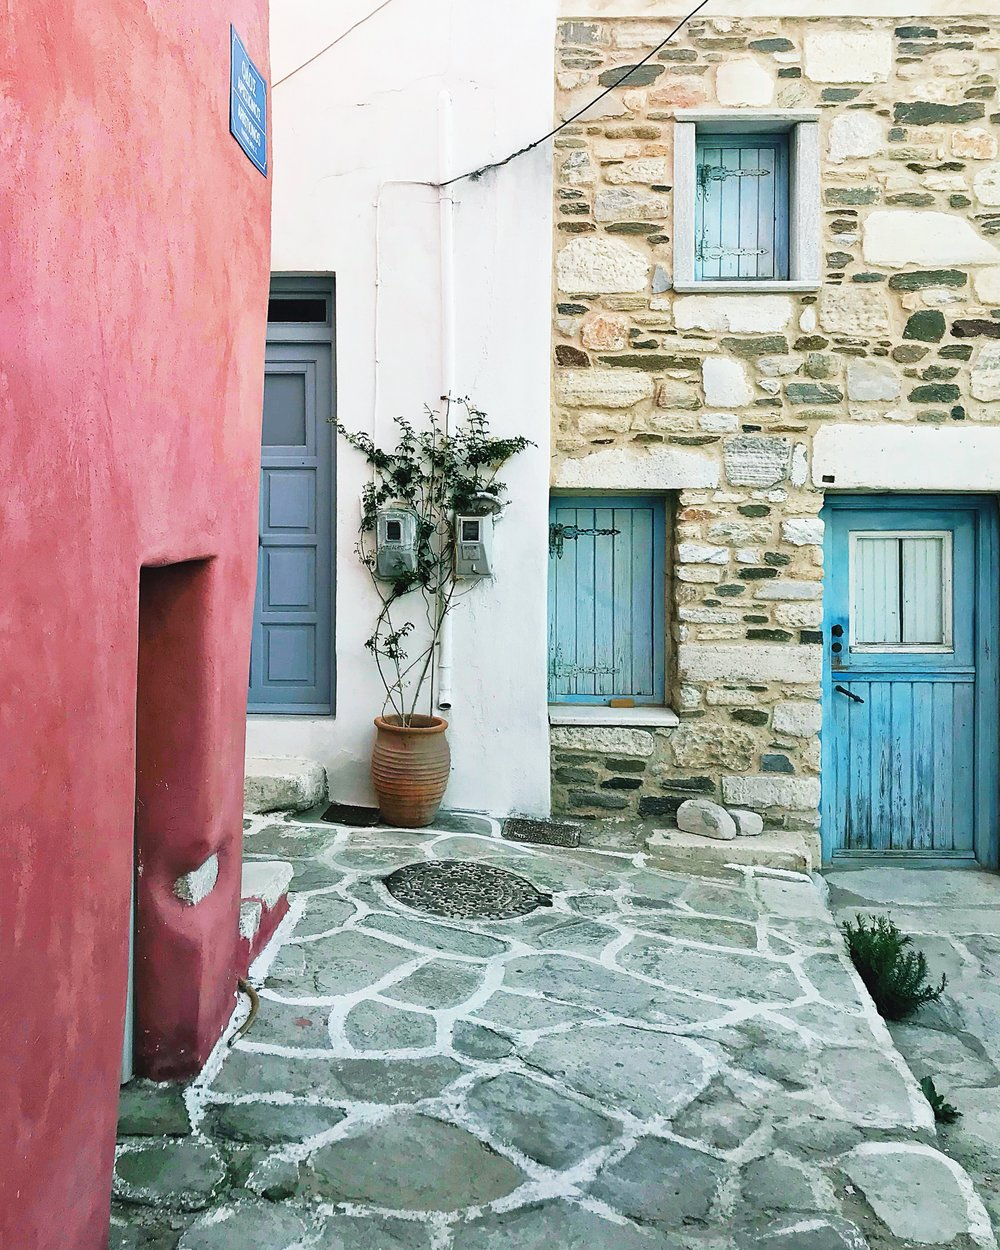 paros-greece-street-architecture-holiday-travel-blog-parokia.JPG